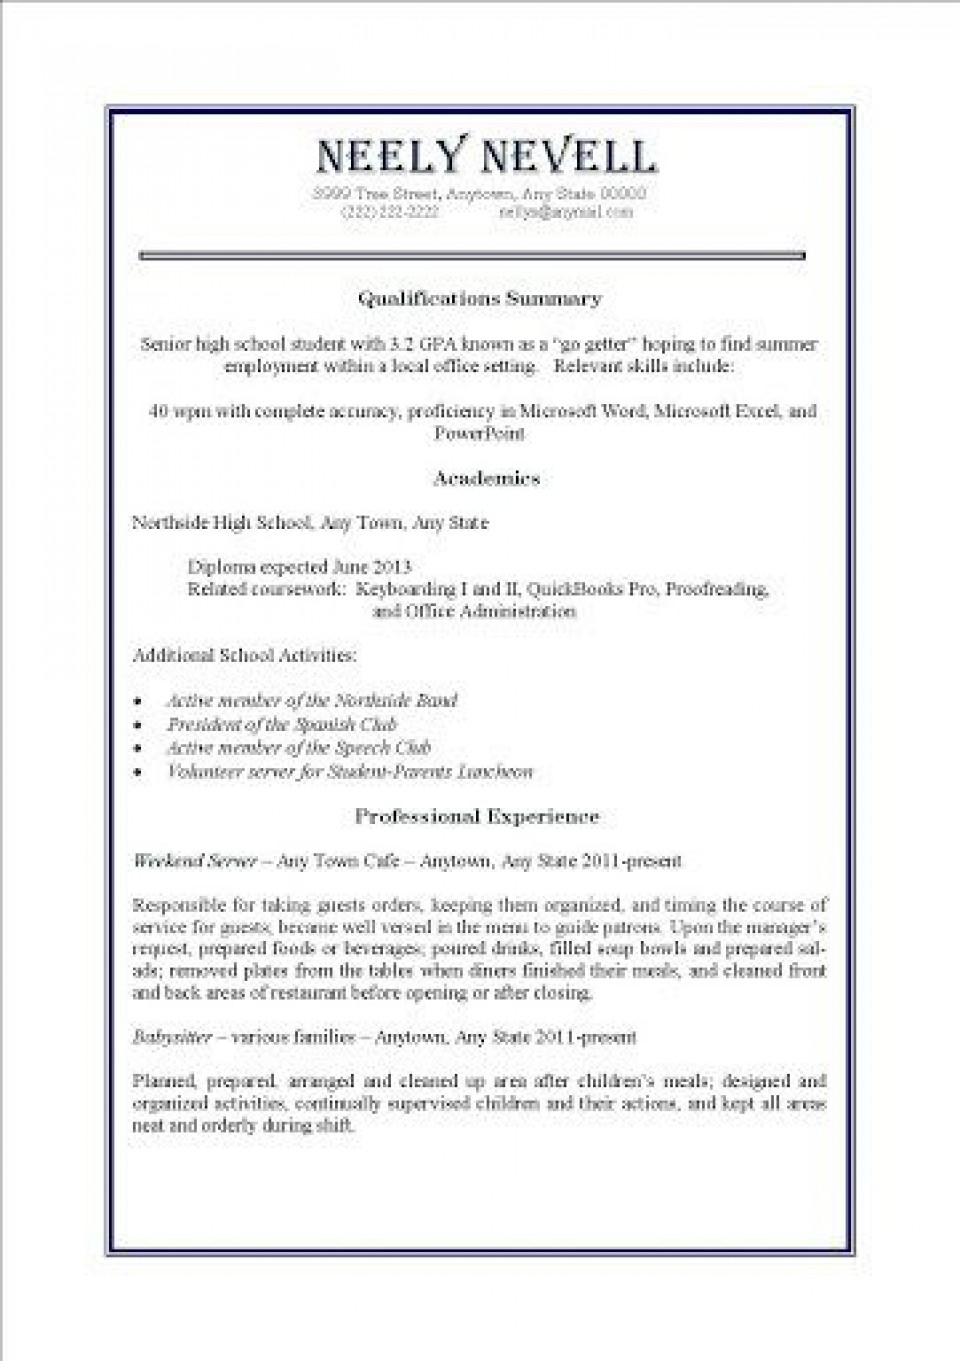 000 Awesome Resume Template For Teen High Definition  Teenager First Job Australia960